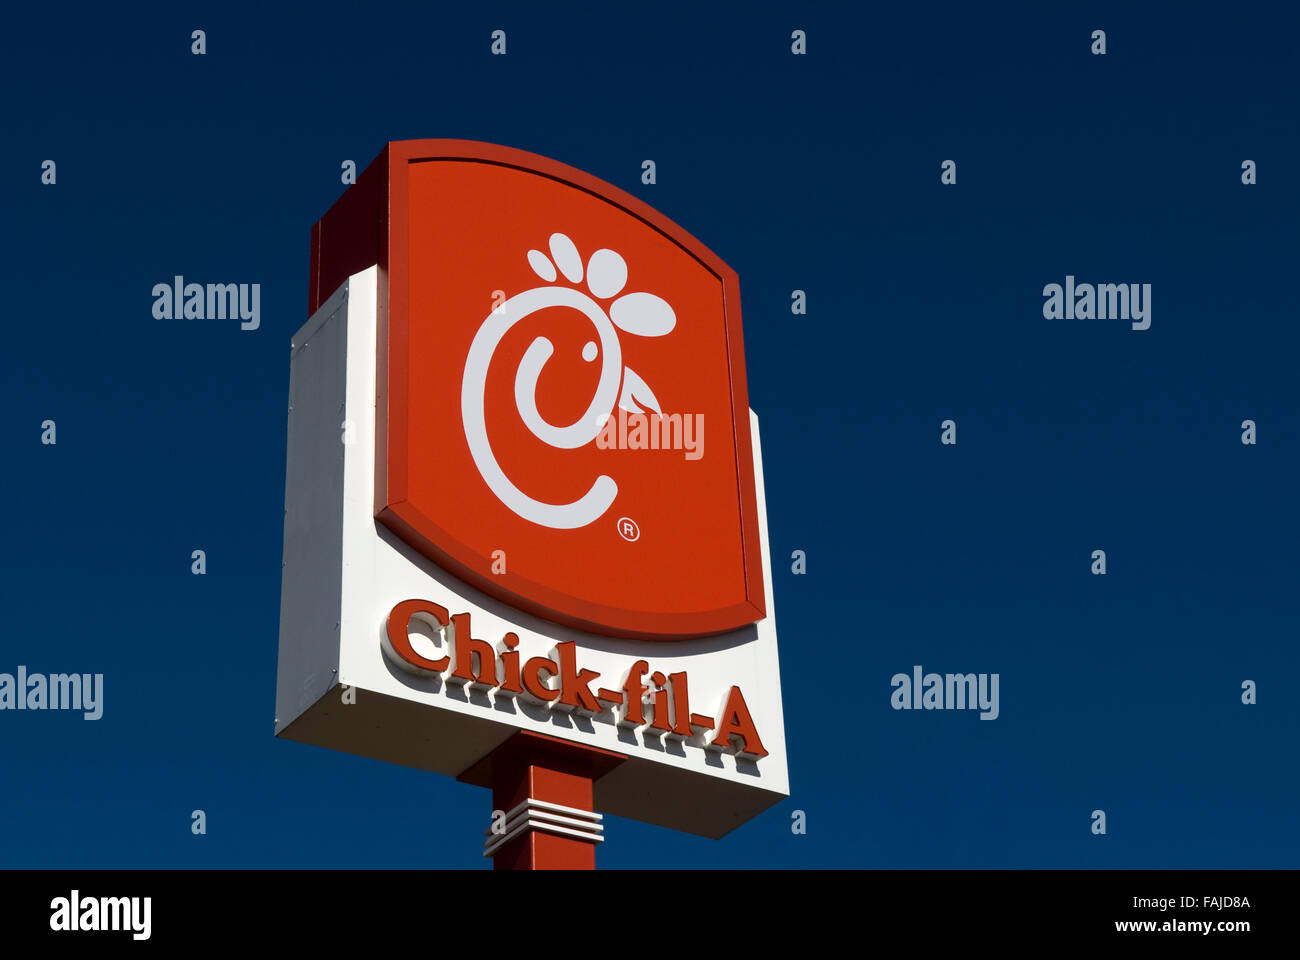 Chick fil a stock symbol images symbols and meanings chick fil a stock symbol gallery symbols and meanings chick fil a restaurant sign usa stock buycottarizona Gallery